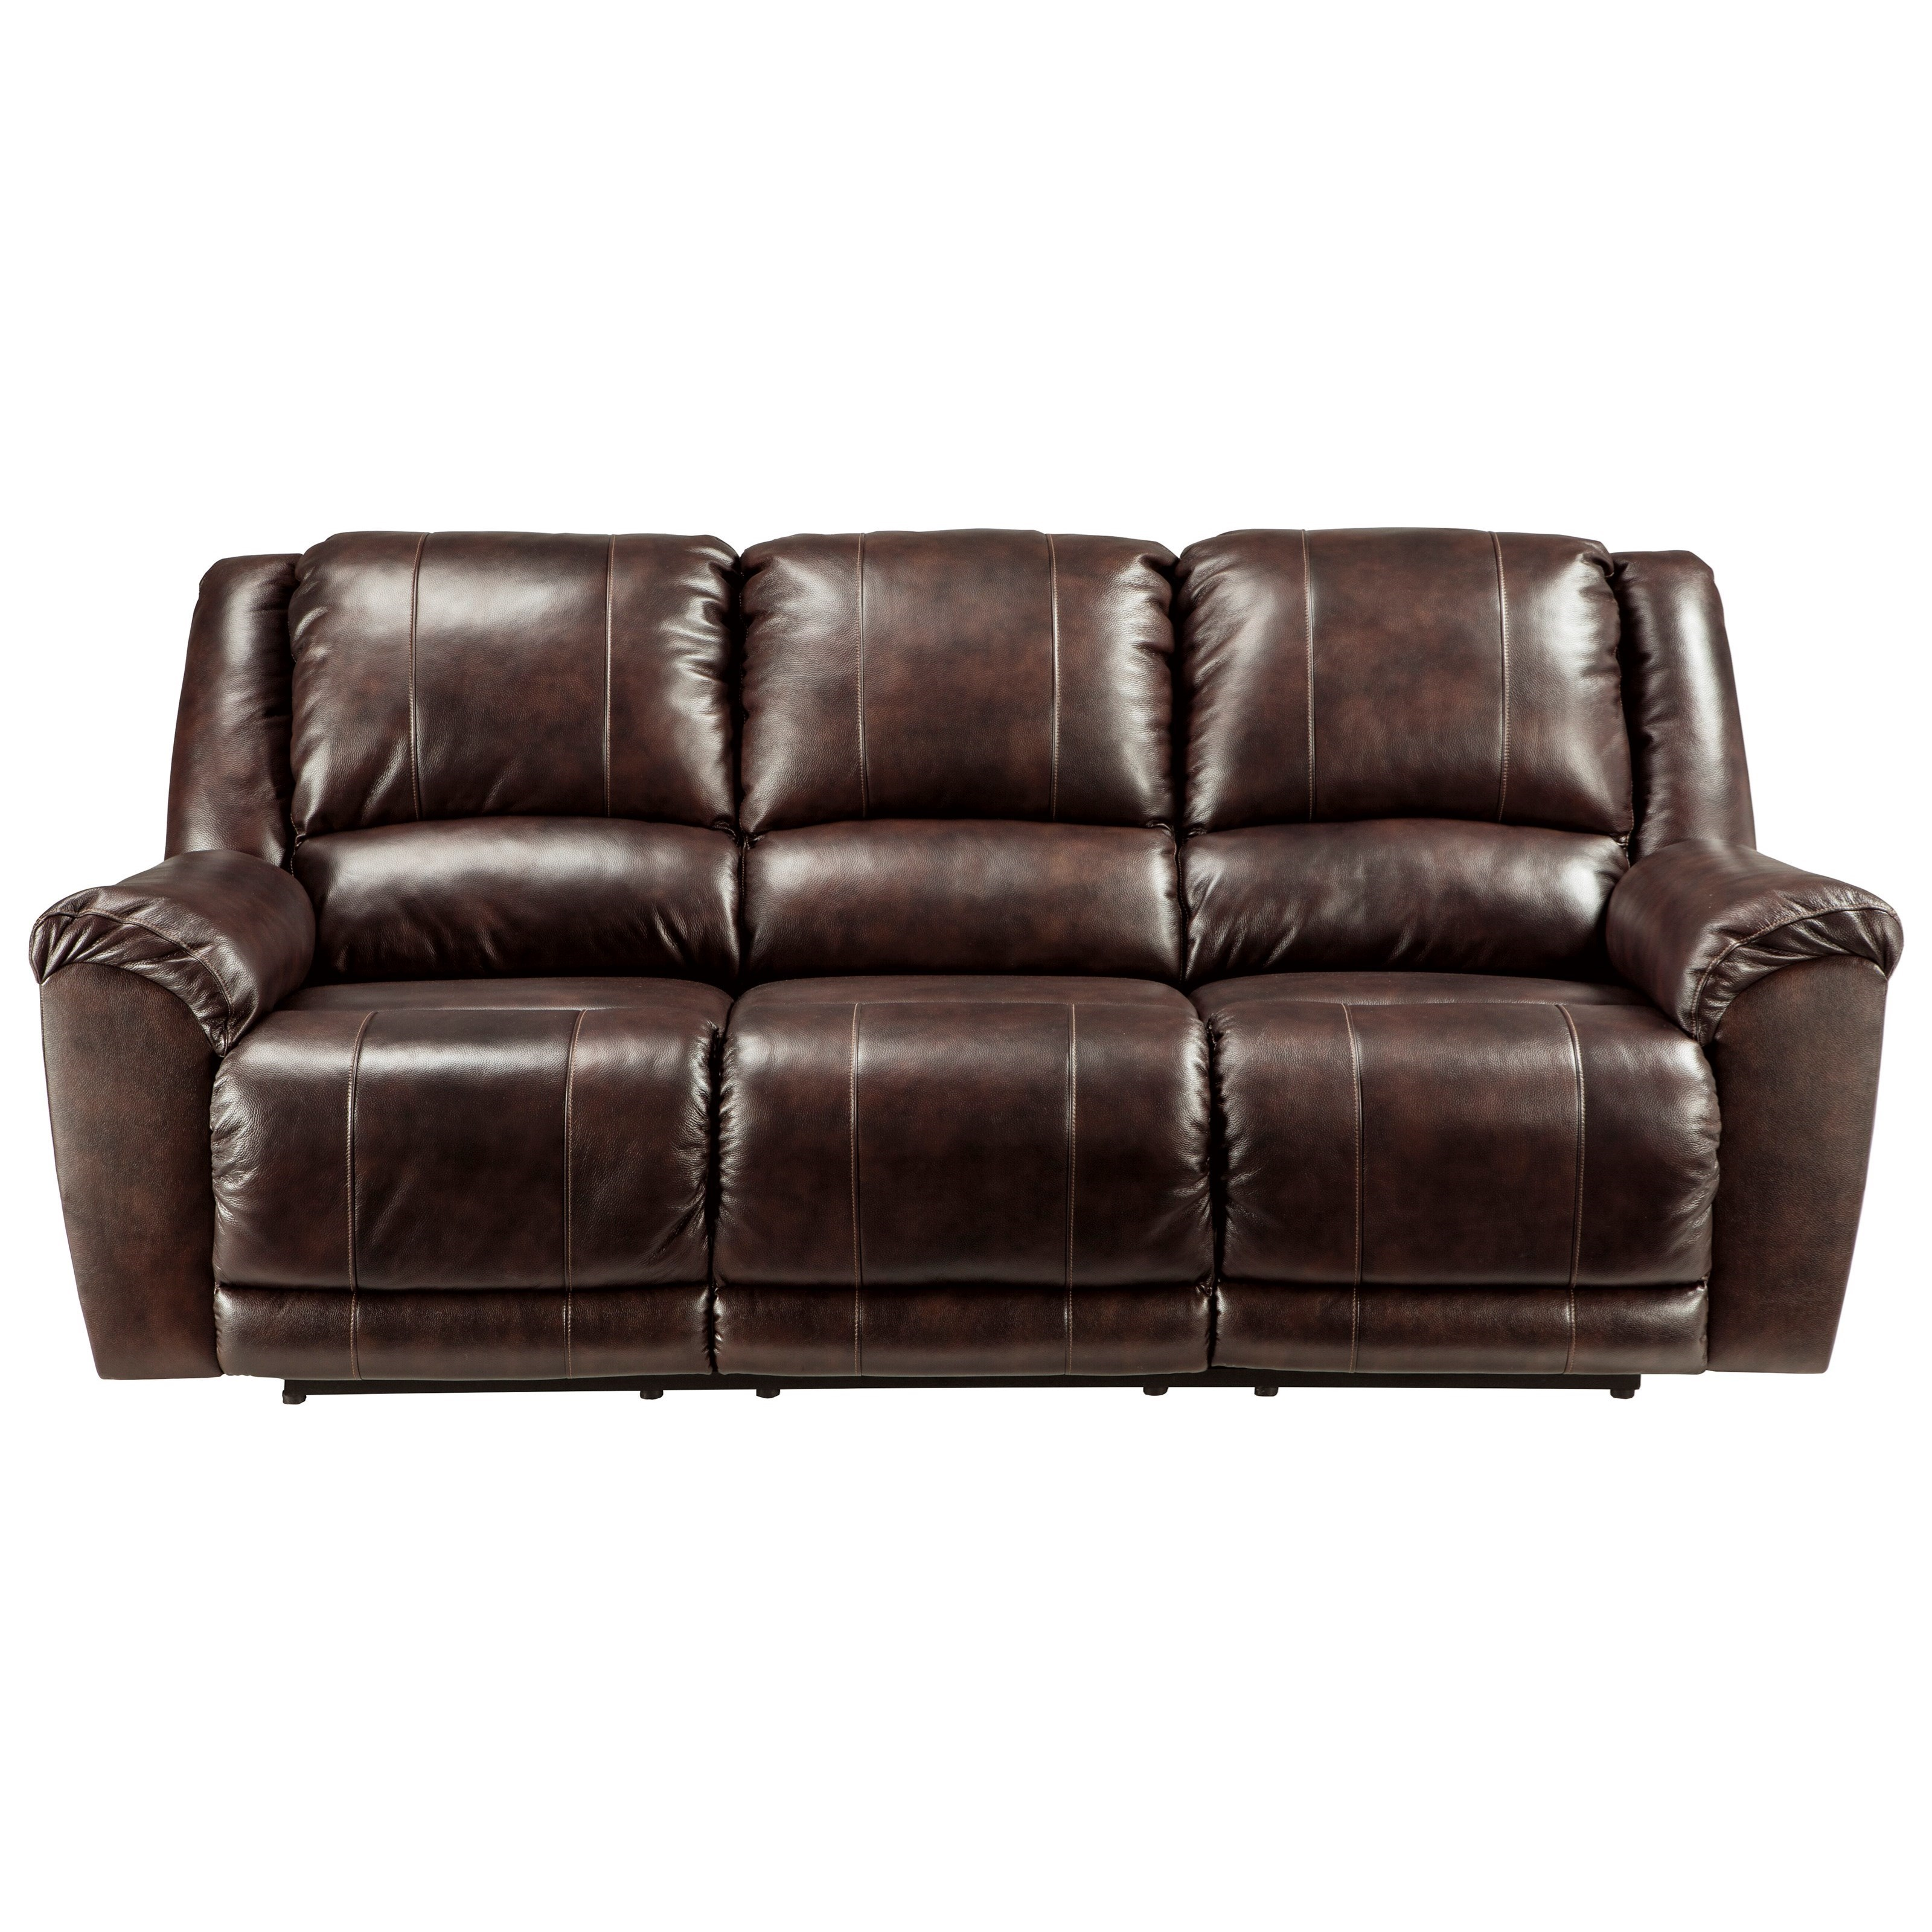 Signature Design By Ashley Furniture Yancy Leather Match Reclining